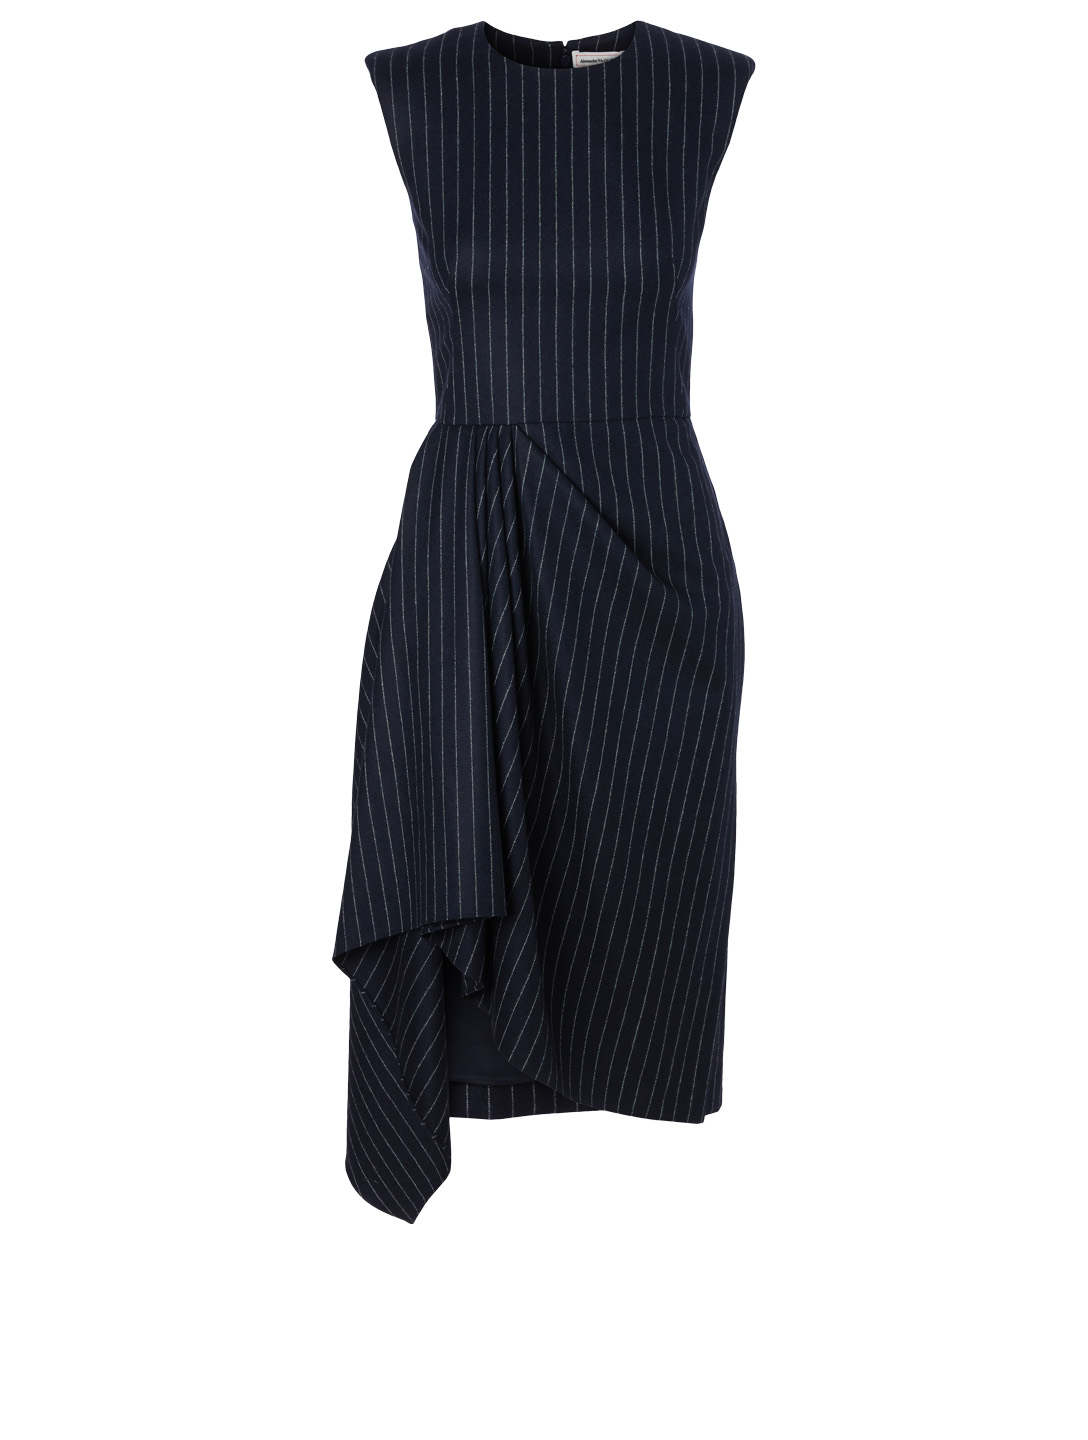 ALEXANDER MCQUEEN Wool Midi Dress In Pinstripe Print Women's Blue